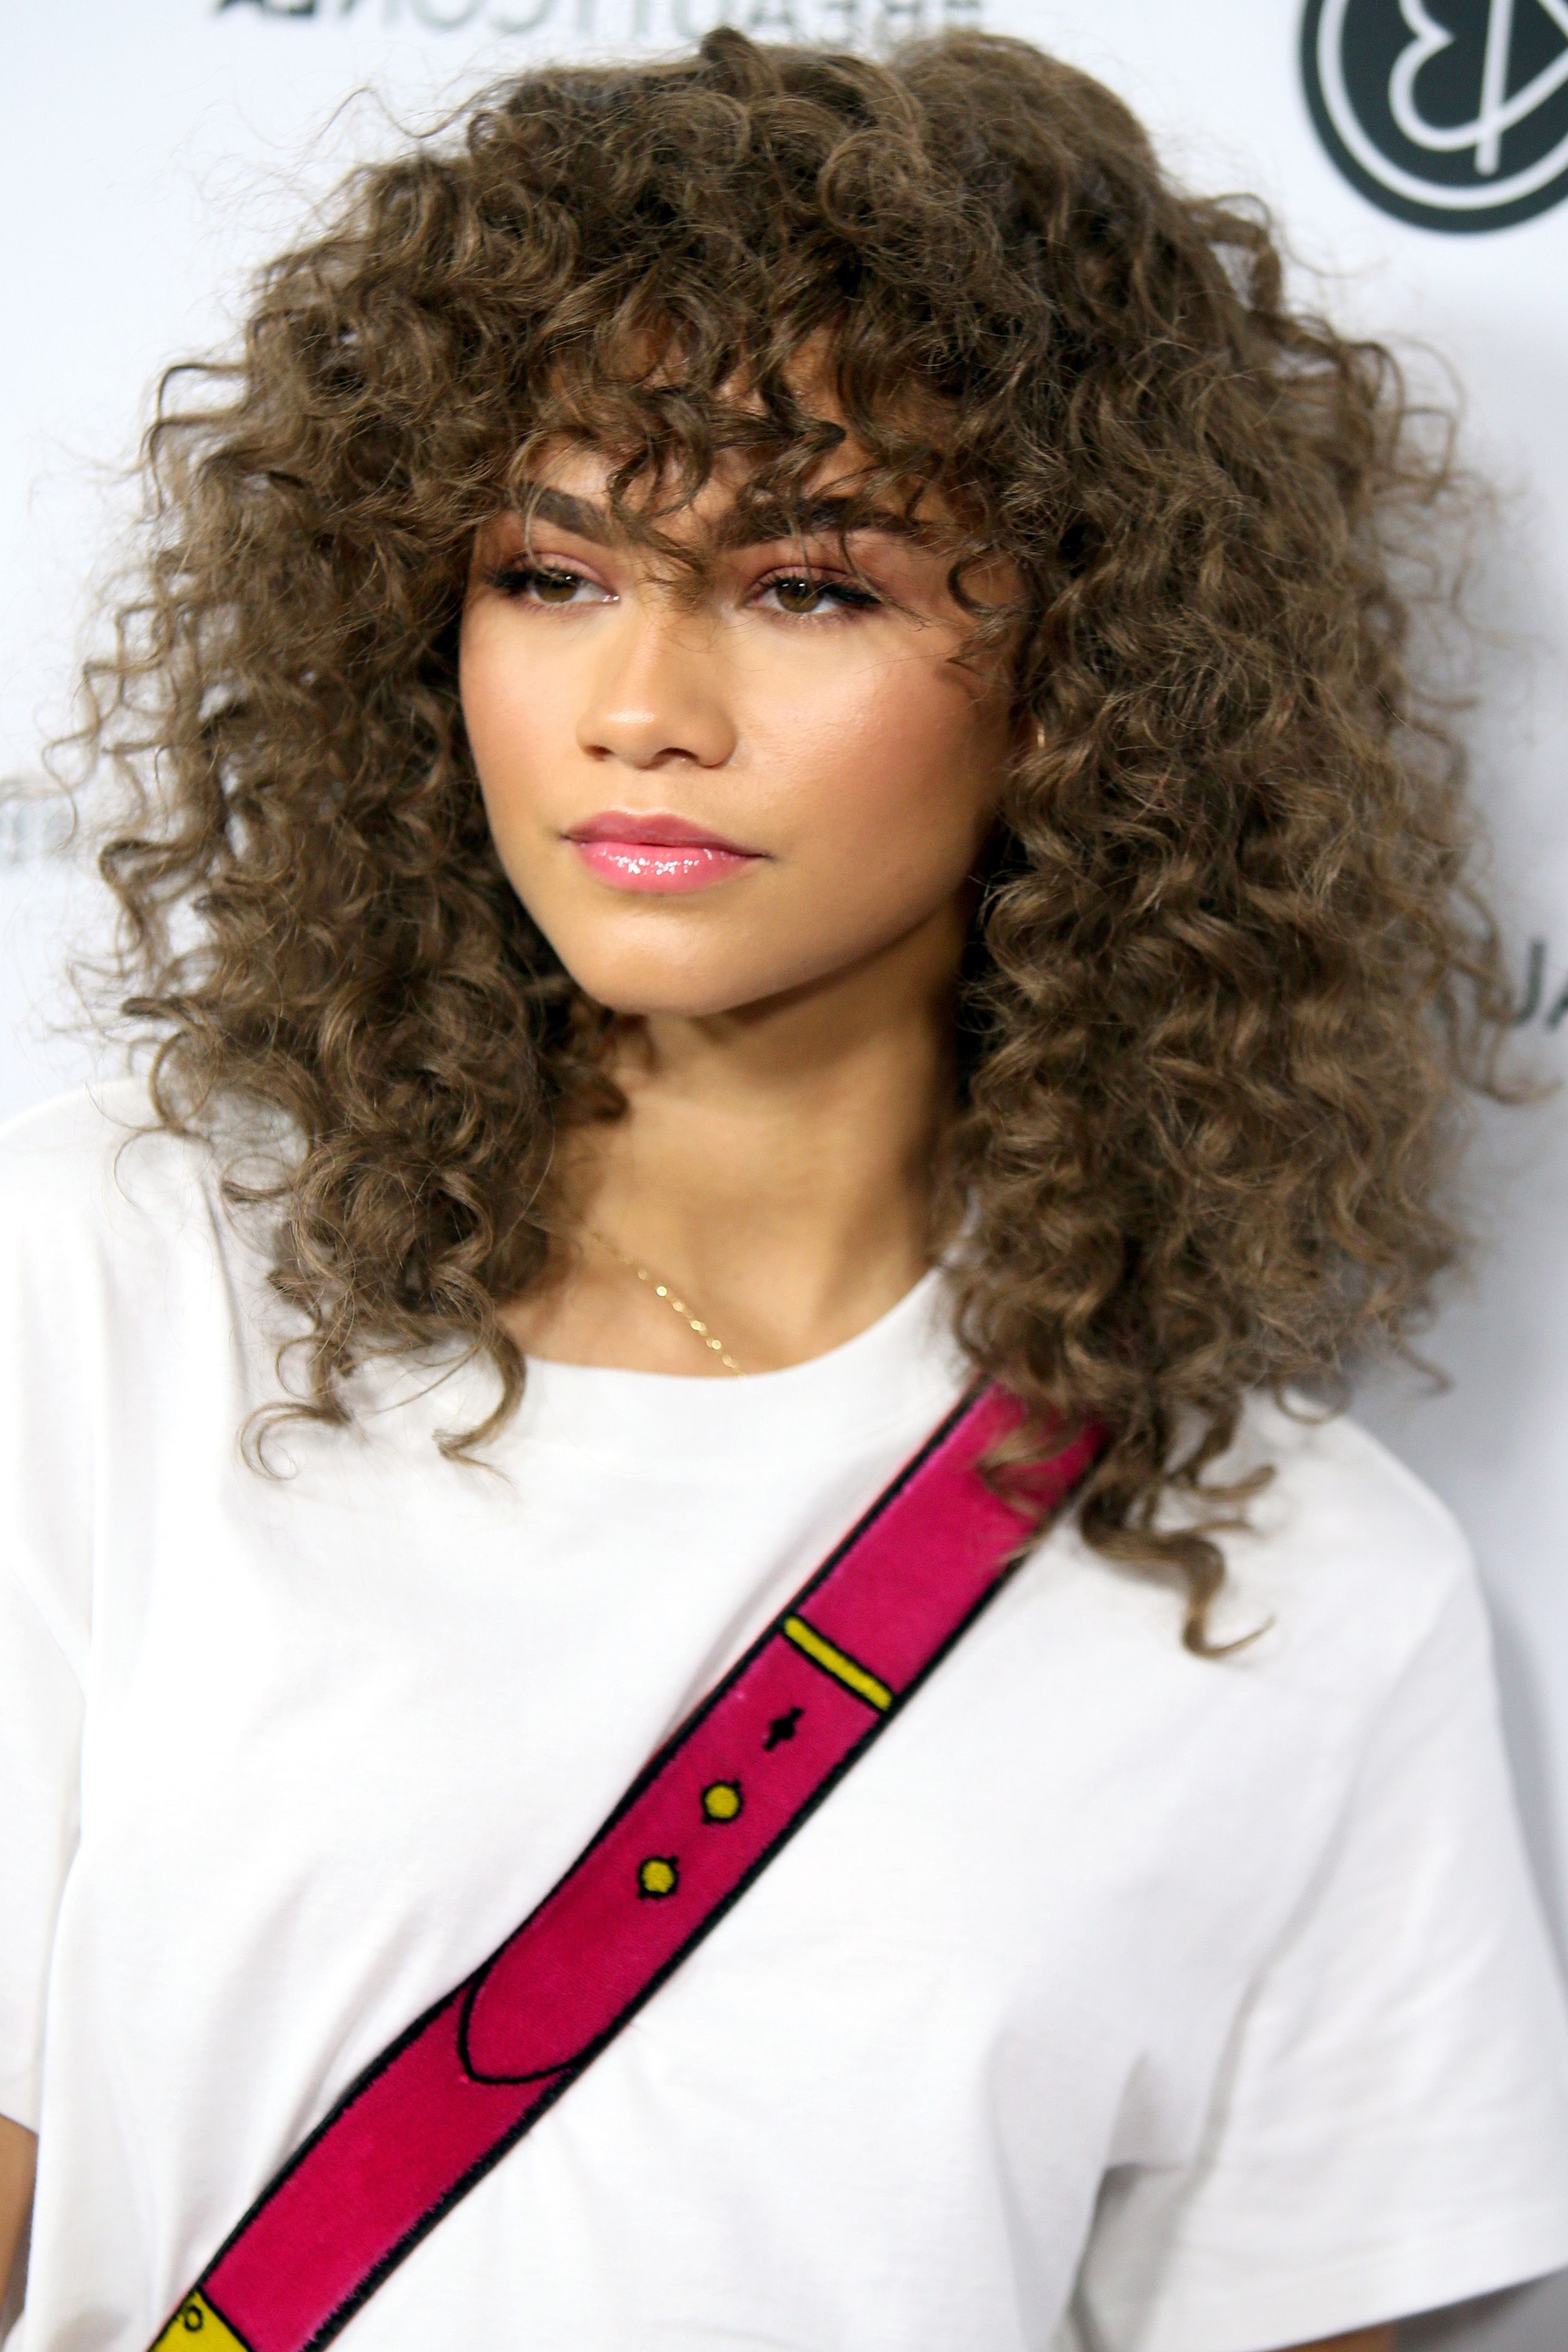 28 Easy Natural Hairstyles For Black Women – Short, Medium & Long In 2018 Natural Curly Pony Hairstyles With Bangs (View 3 of 20)